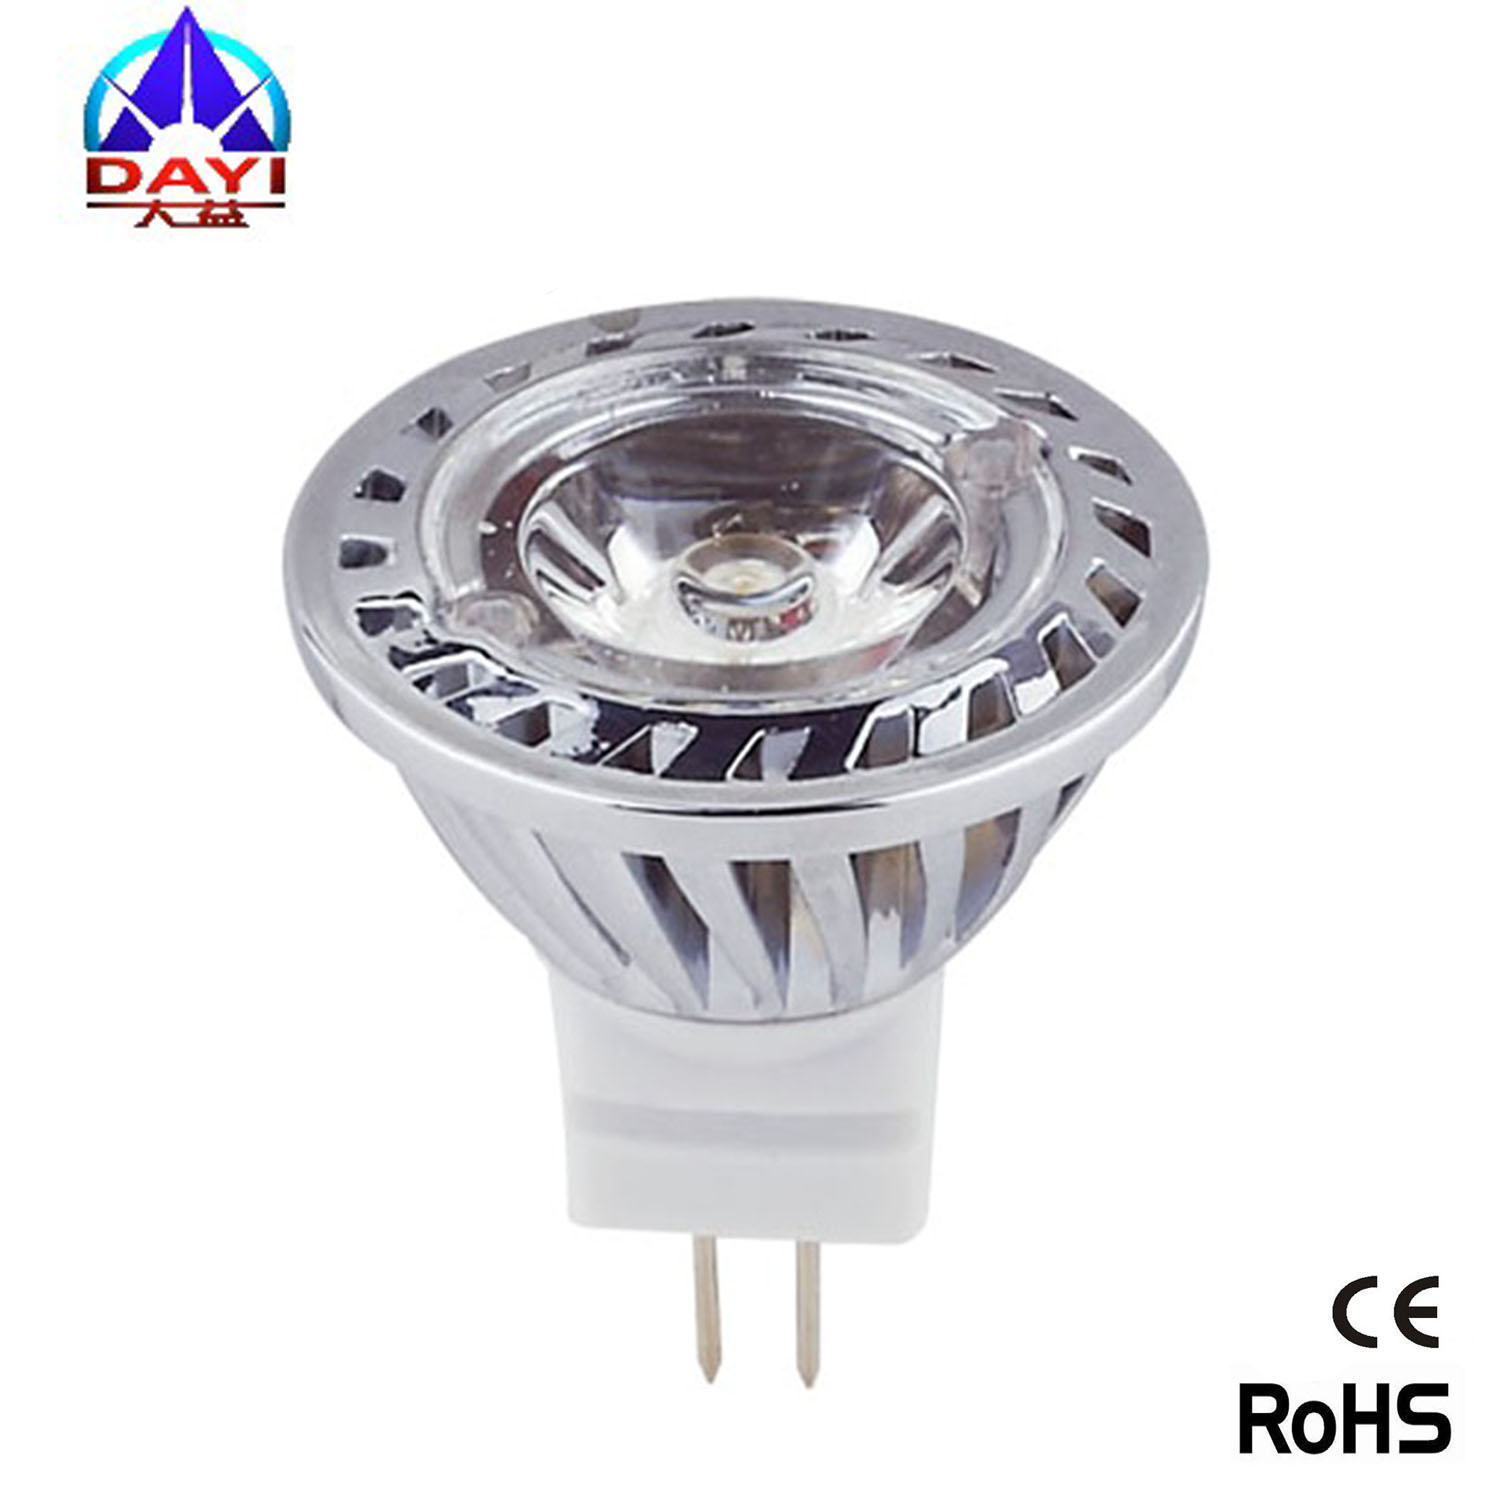 1W-*-1--MR11-LED-spot-lamp-1305275326-0 Spannende Philips Master Led Spot Dekorationen